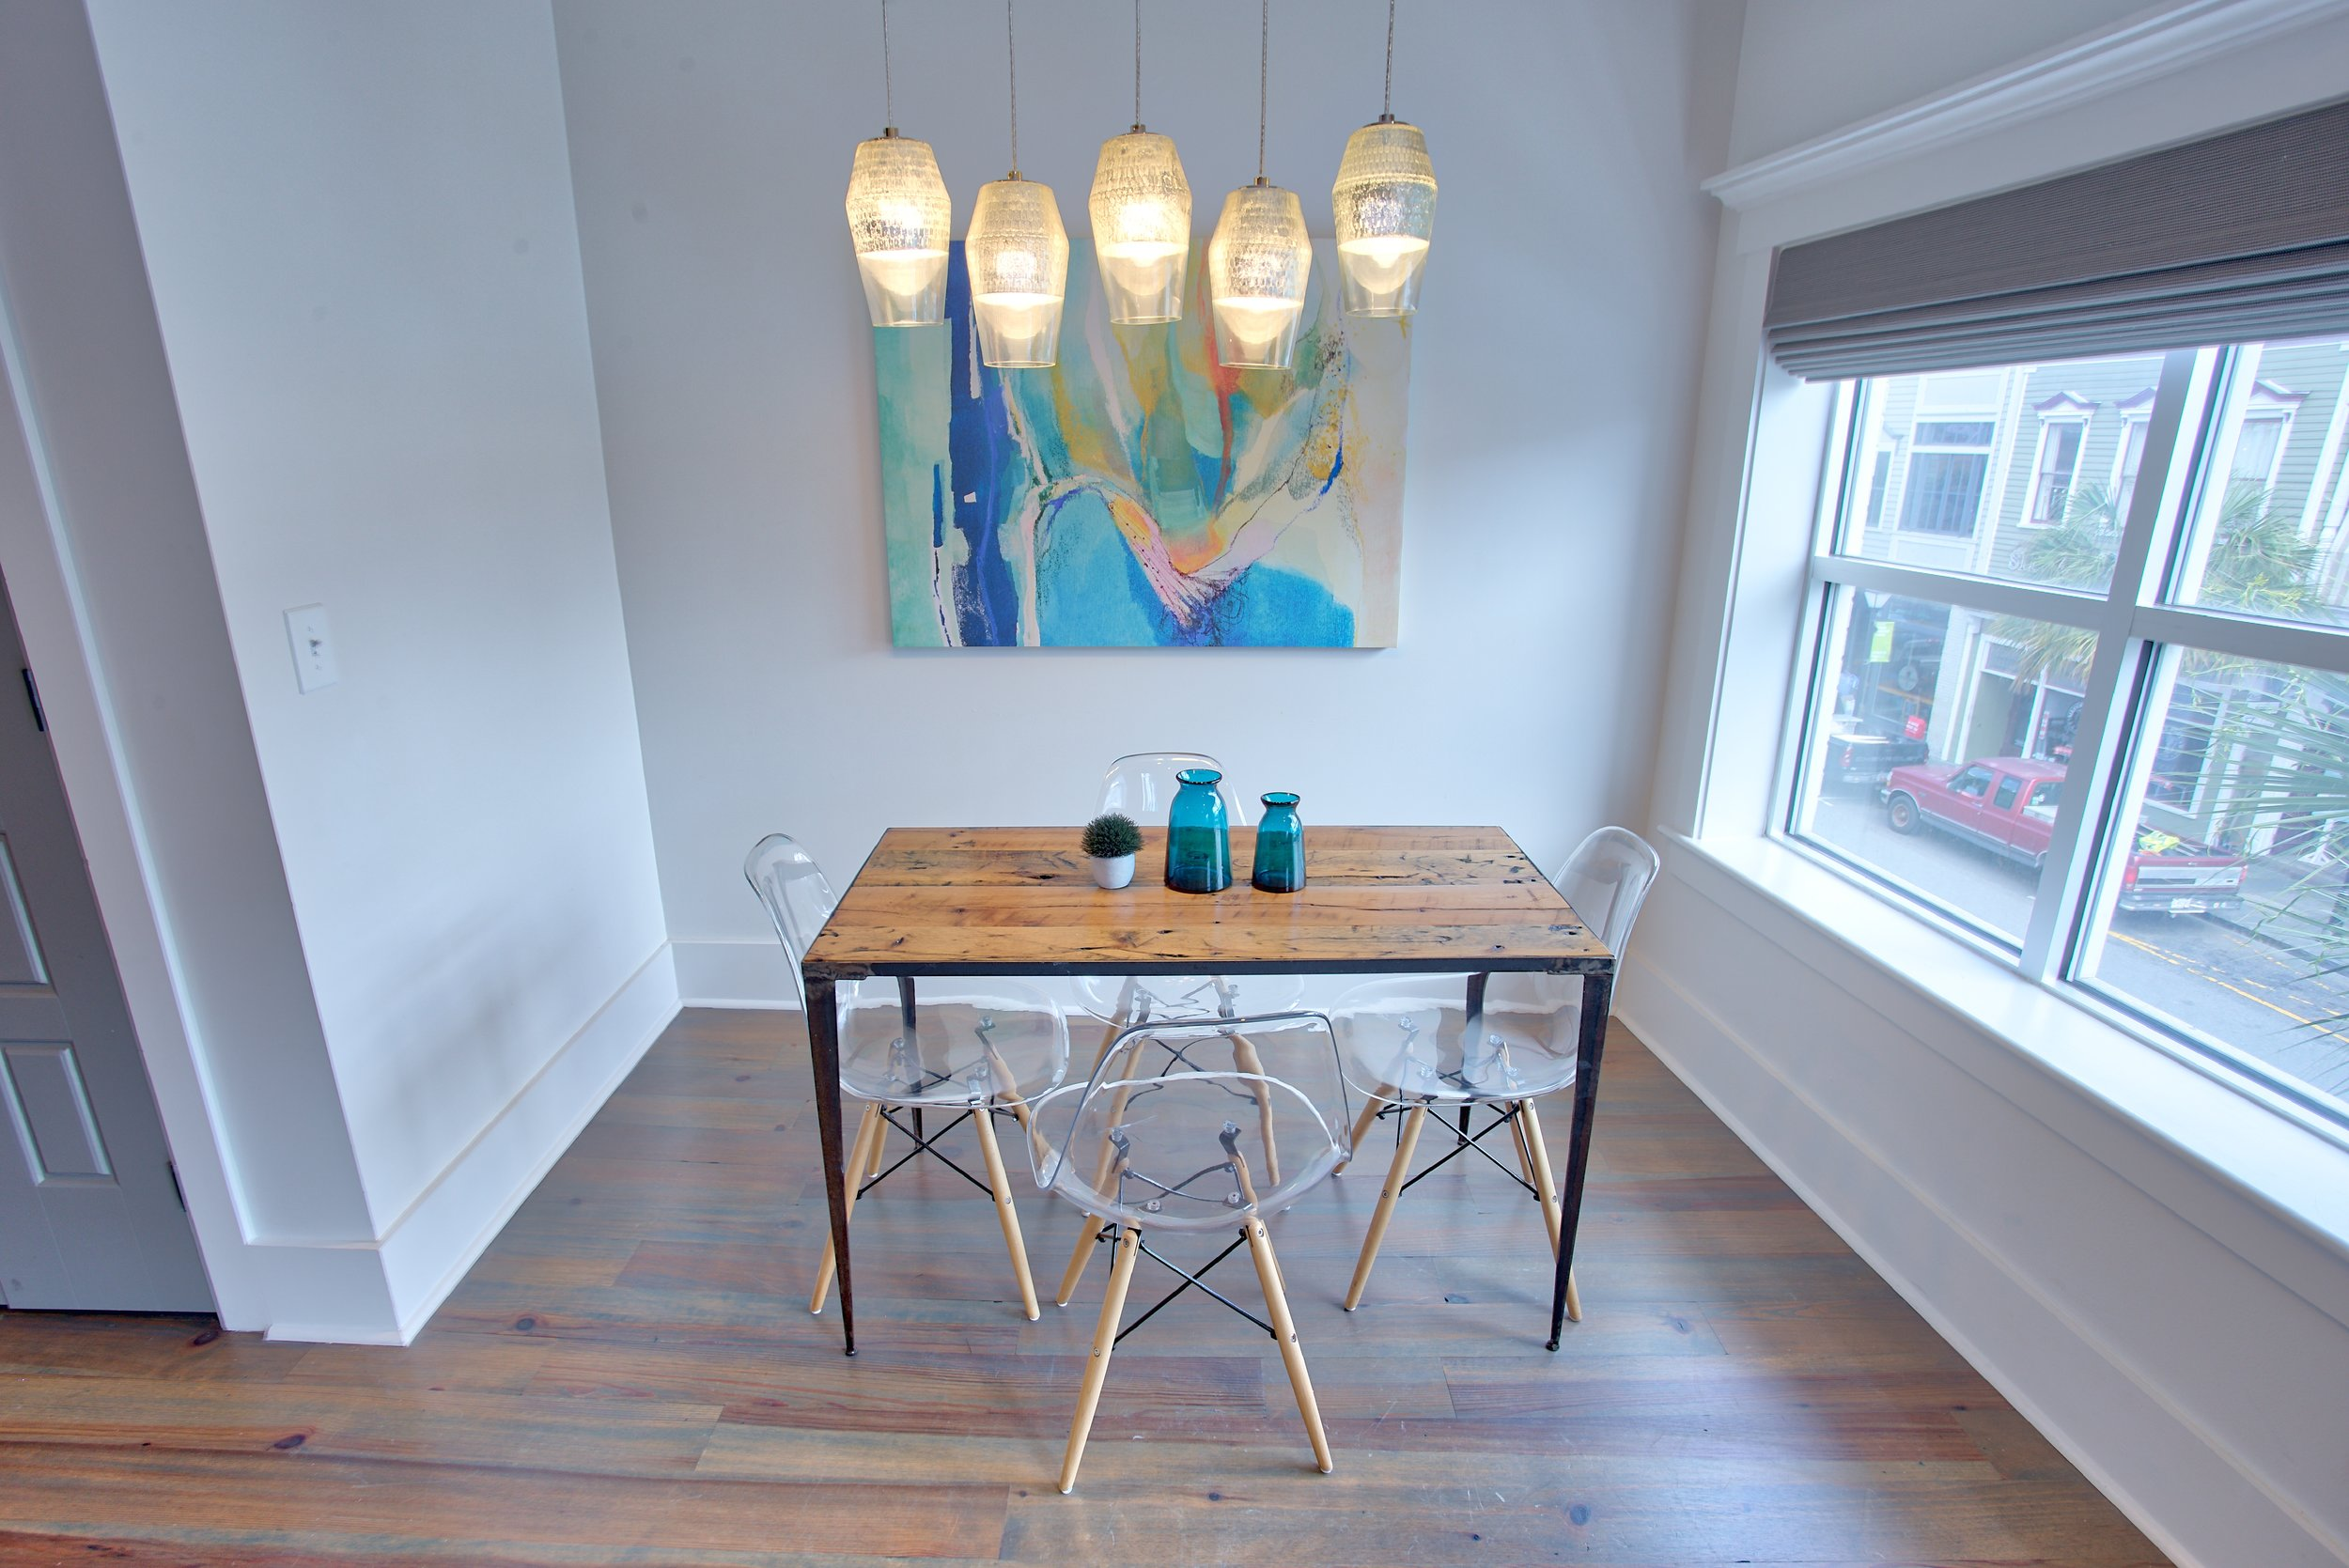 493 KING COMPOUND - UNITS A-H16 BEDROOMS - SLEEPS 36-52